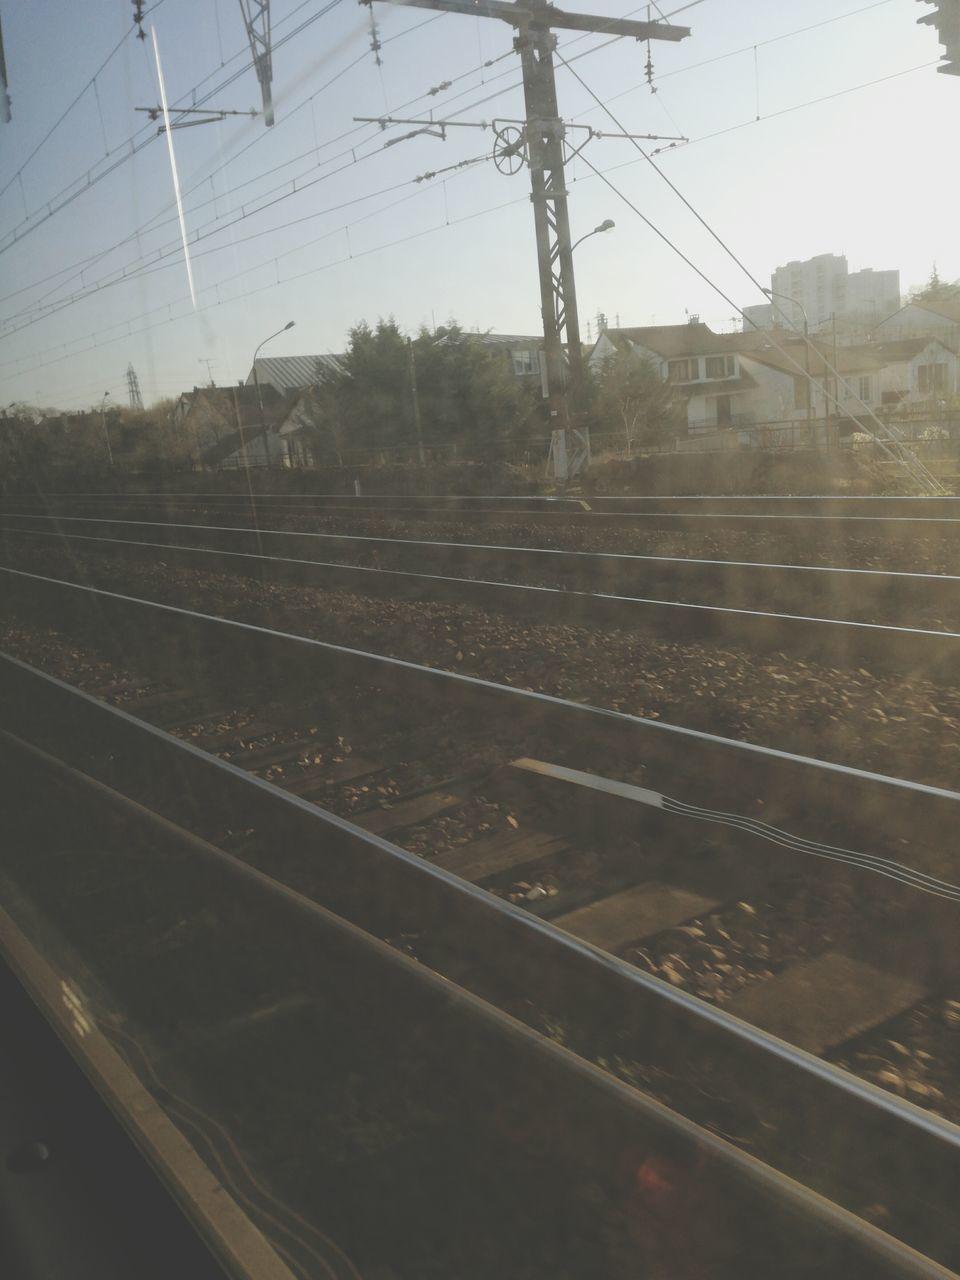 railroad track, cable, rail transportation, transportation, power line, electricity, power supply, electricity pylon, connection, no people, public transportation, day, sky, outdoors, clear sky, nature